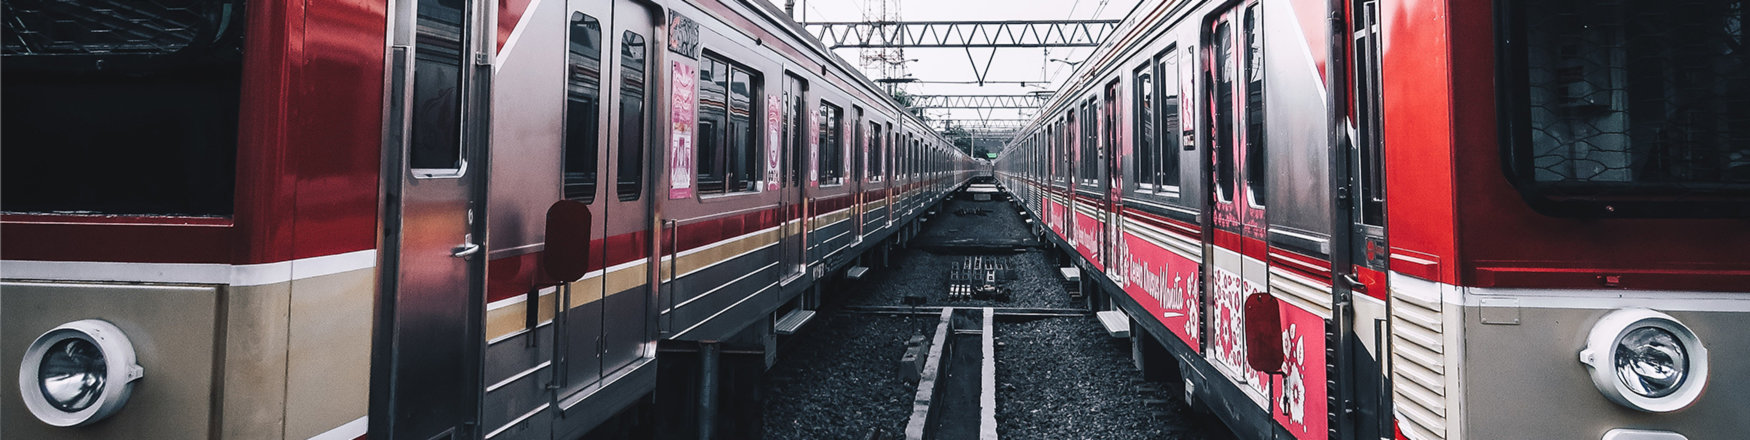 Fall Protection for trains, railcars